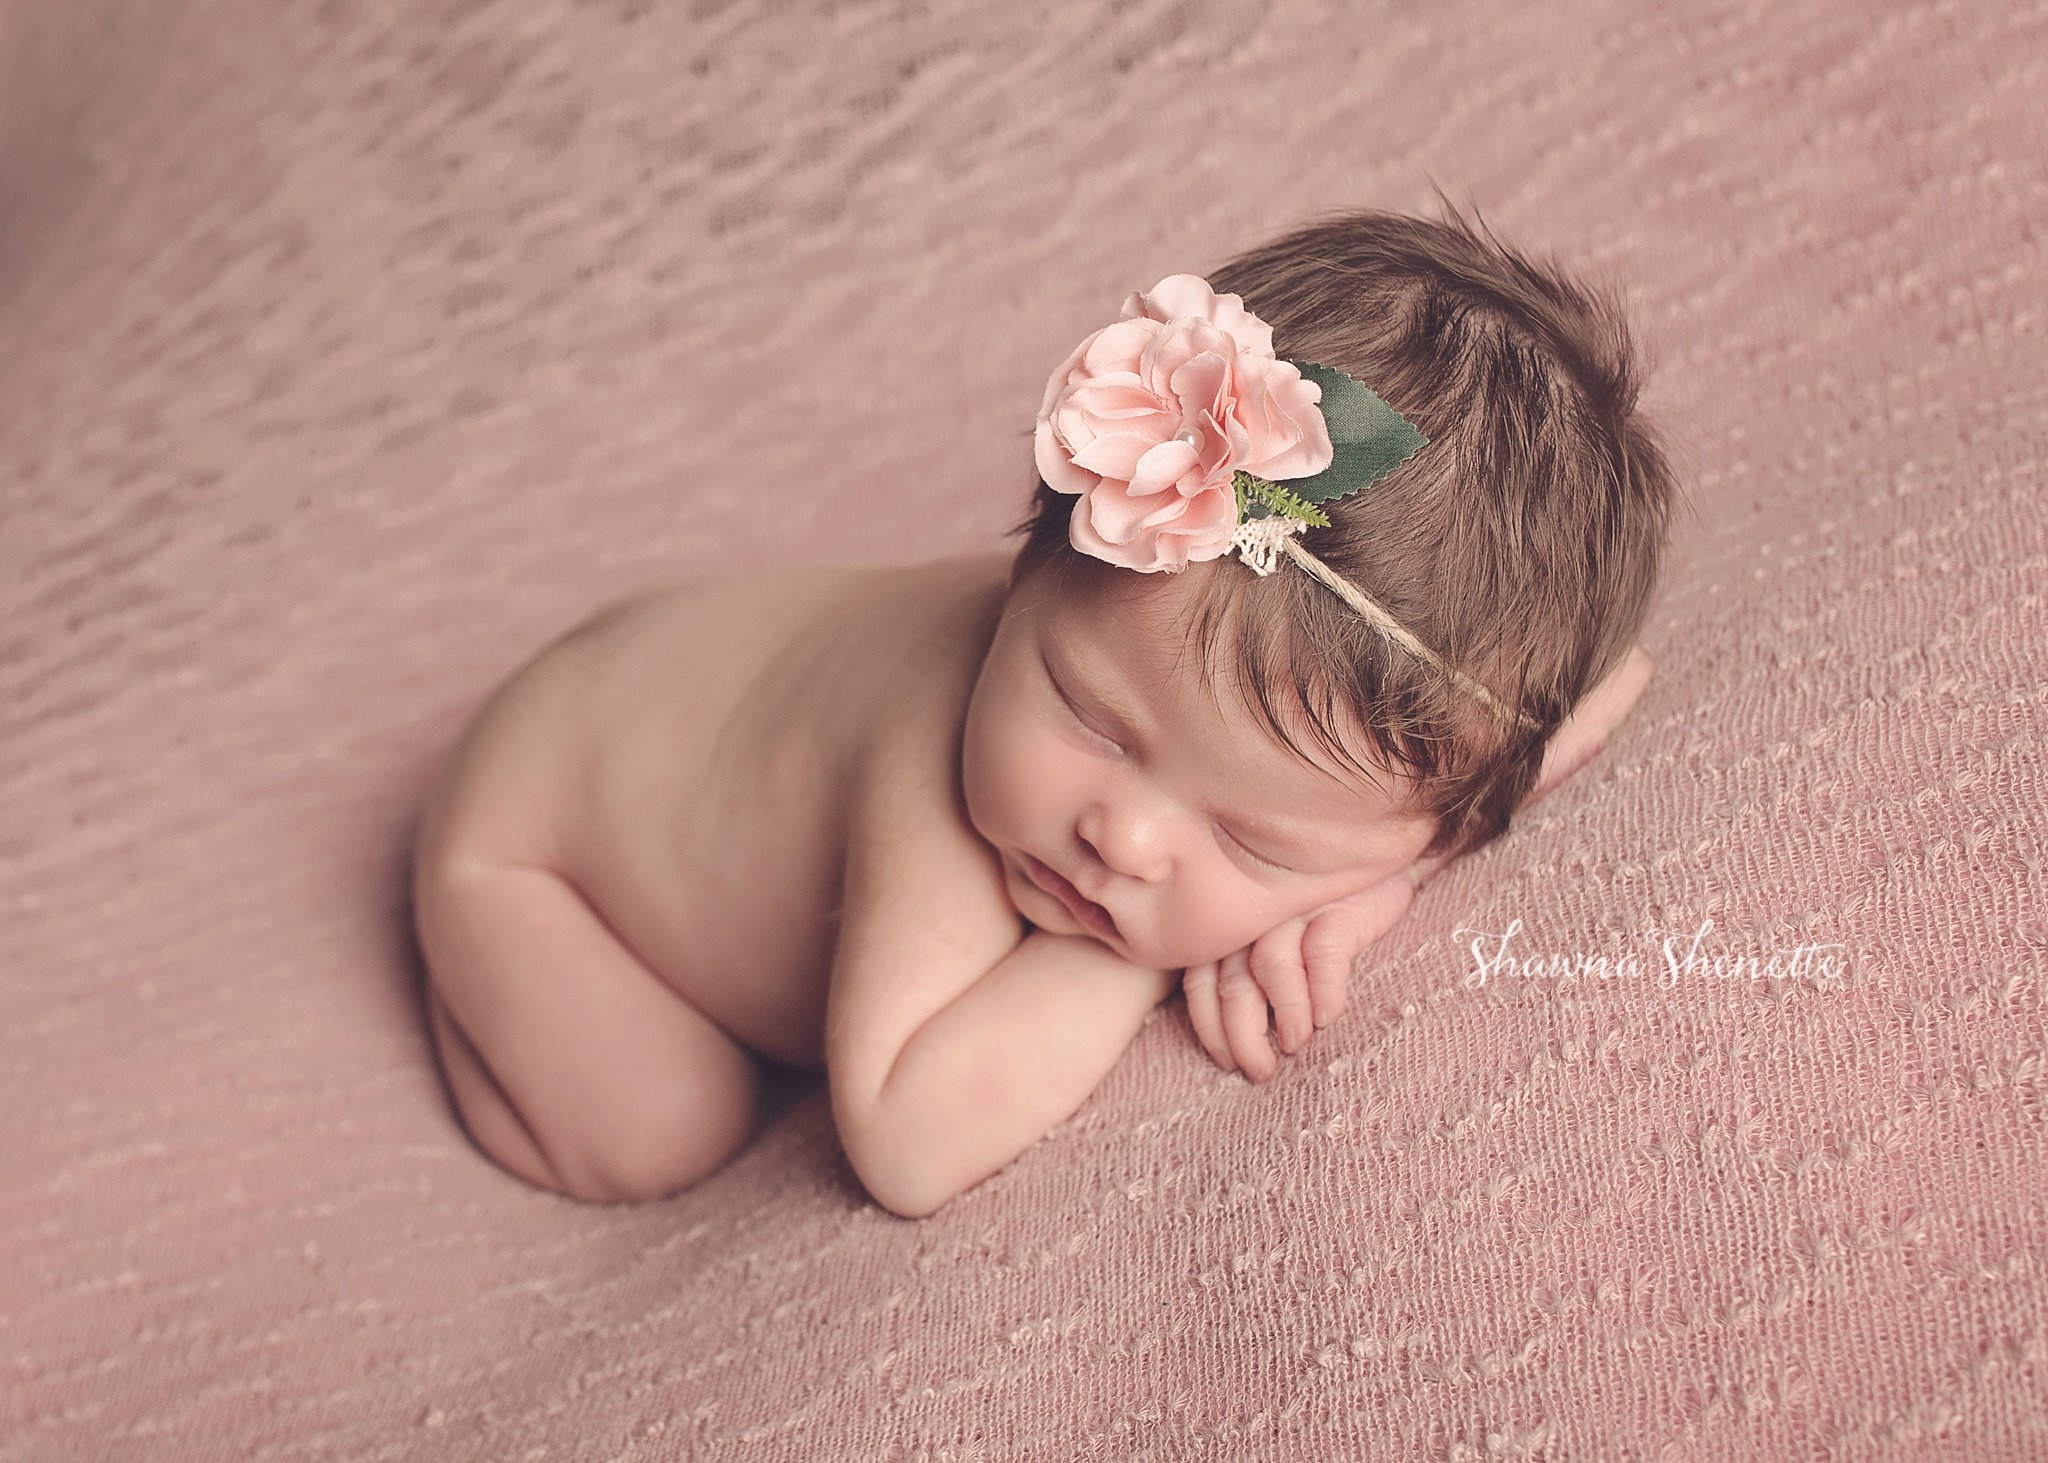 Worcester MA Newborn Baby Girl Photographer Auburn Millbury Sutton Boston Metrowest Newborn Photos Sweet Baby Girl Photos_0025.jpg